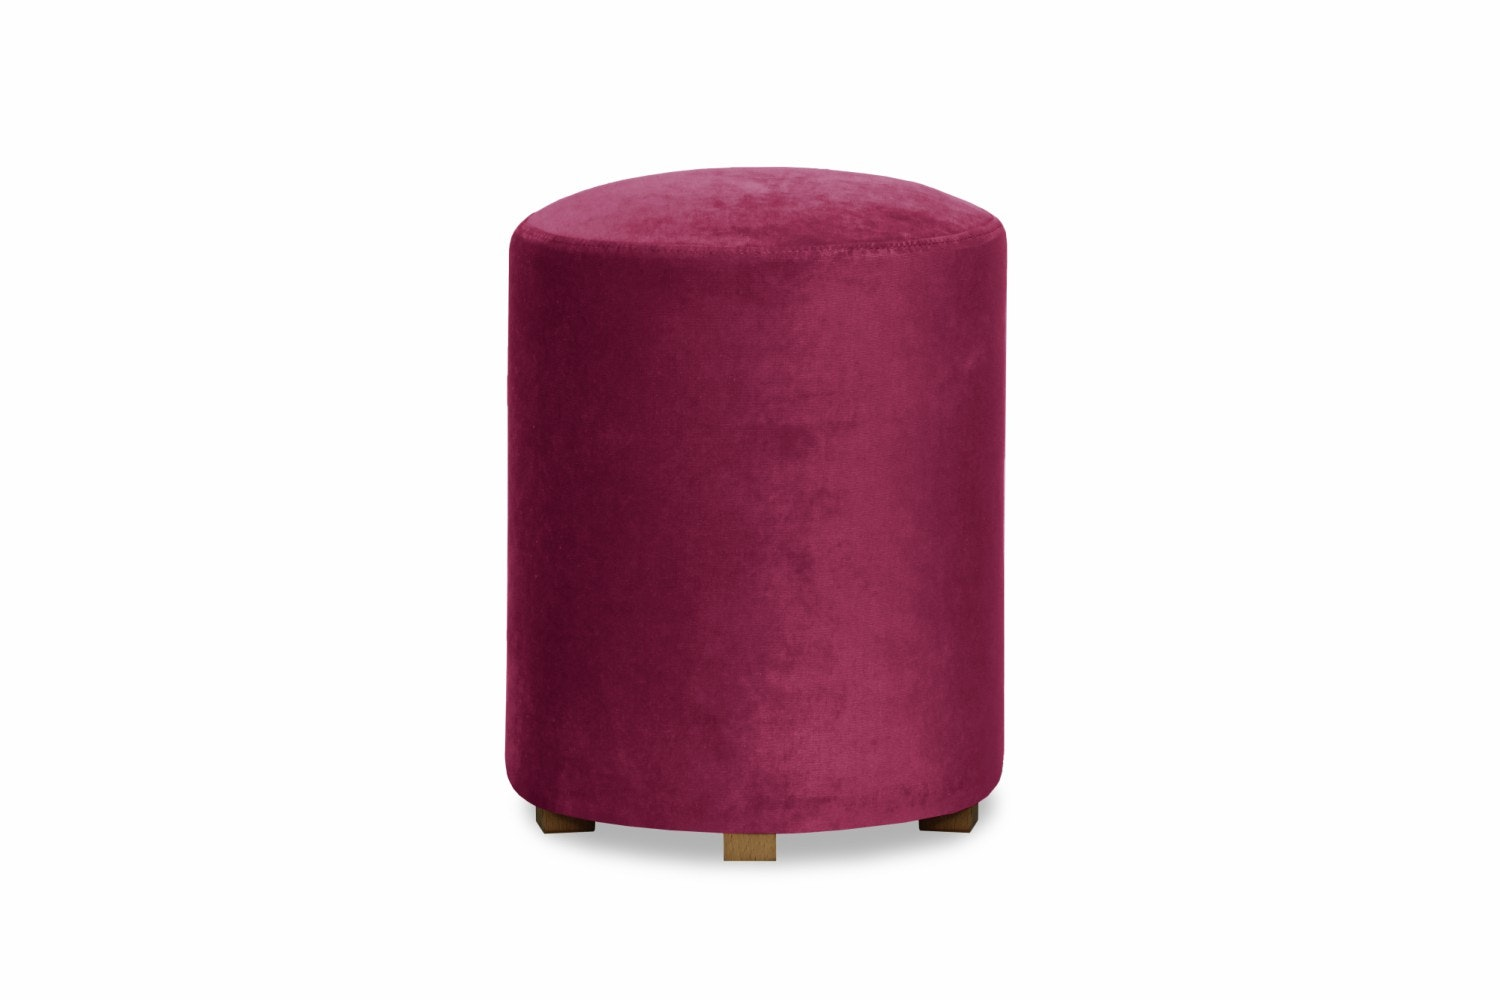 Pufa Bedroom Round Stool | Pink